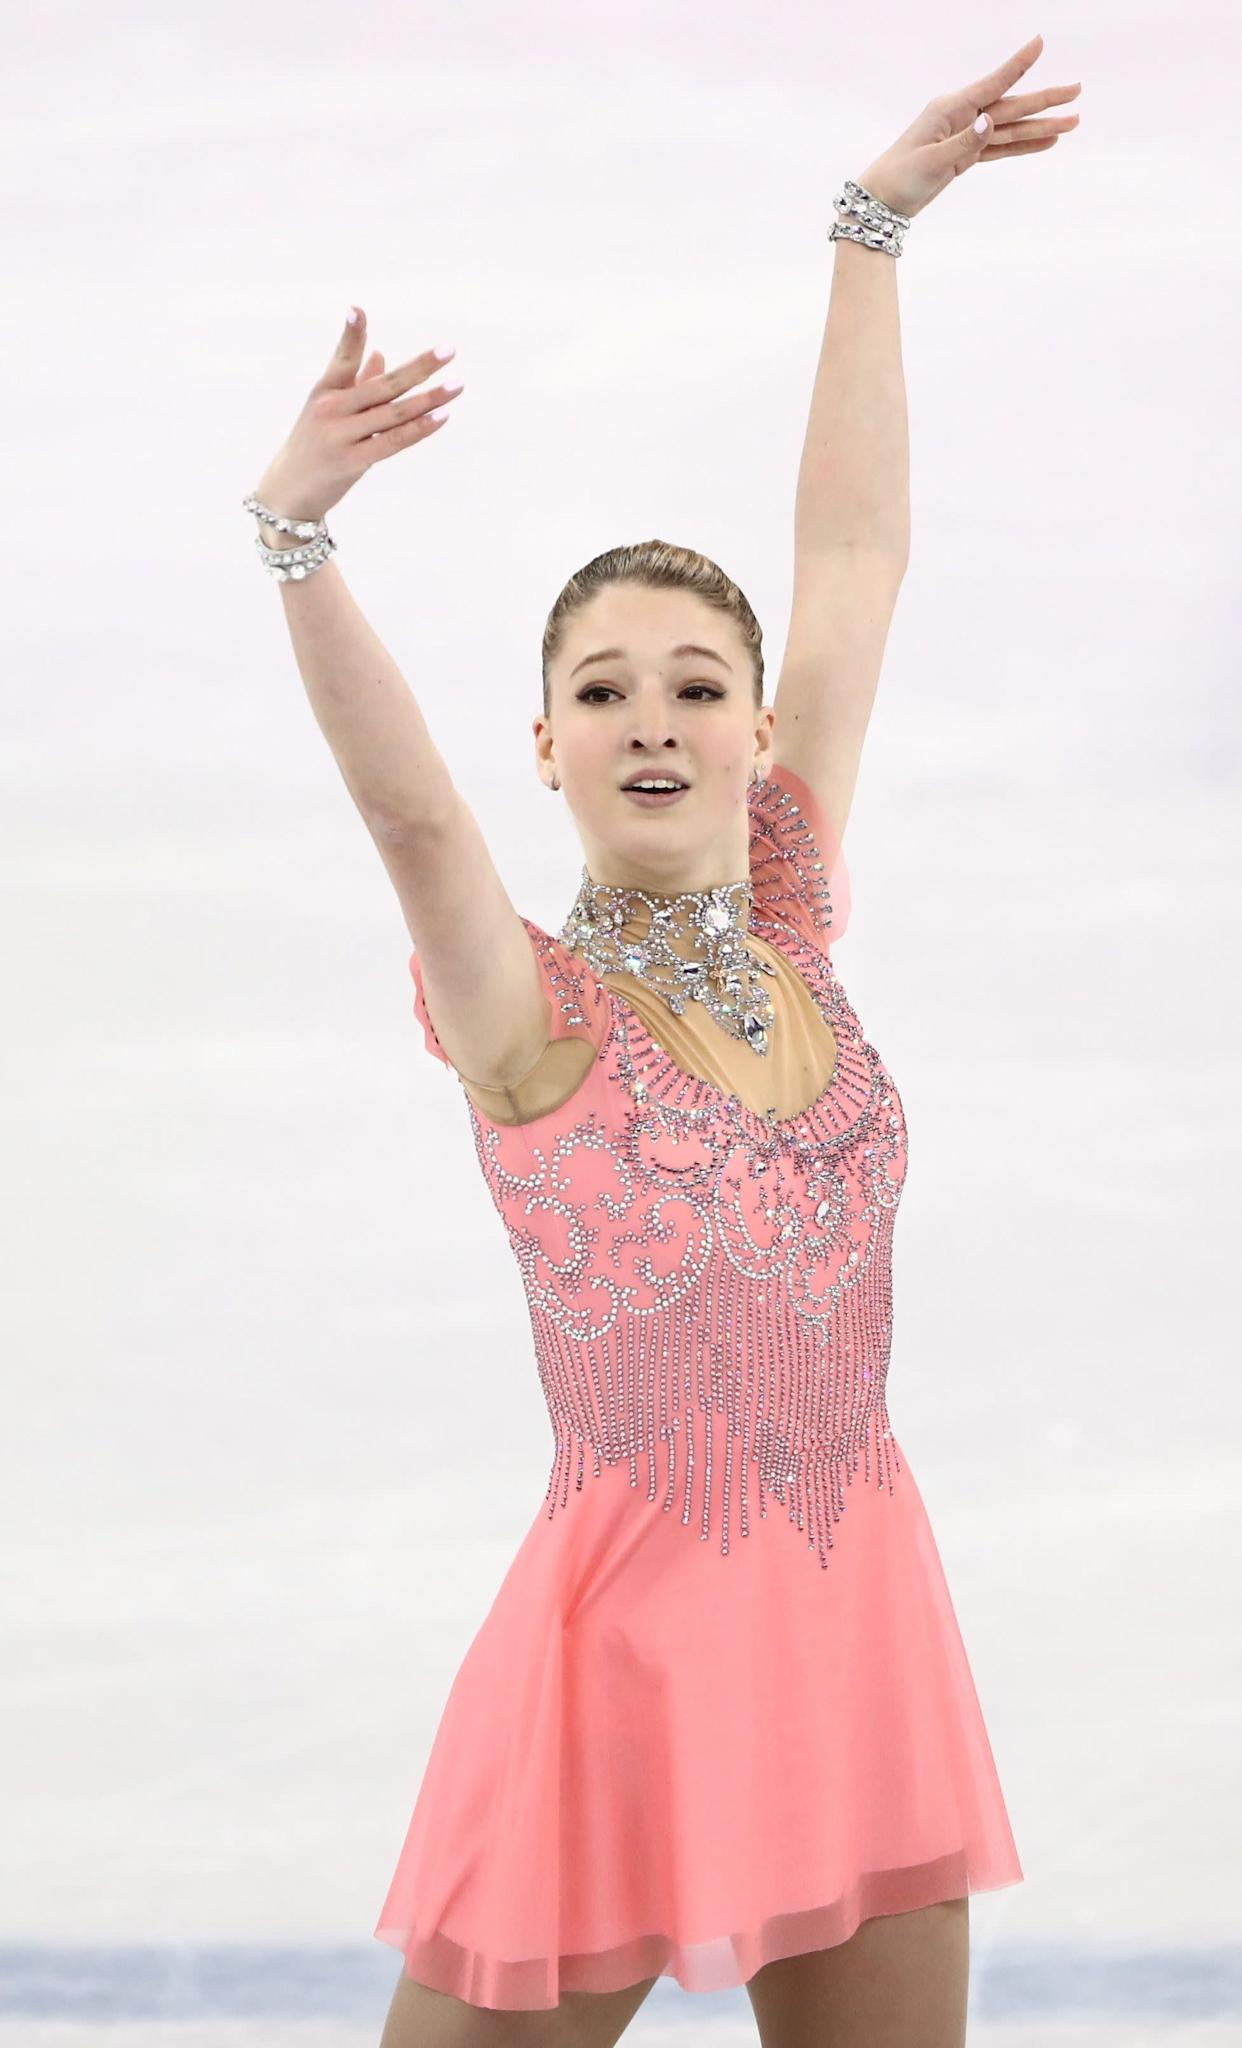 The skater from Russia was pretty in pink for her ladies short program. It's the embellished neckline and cuffs that really make this costume pop, though.